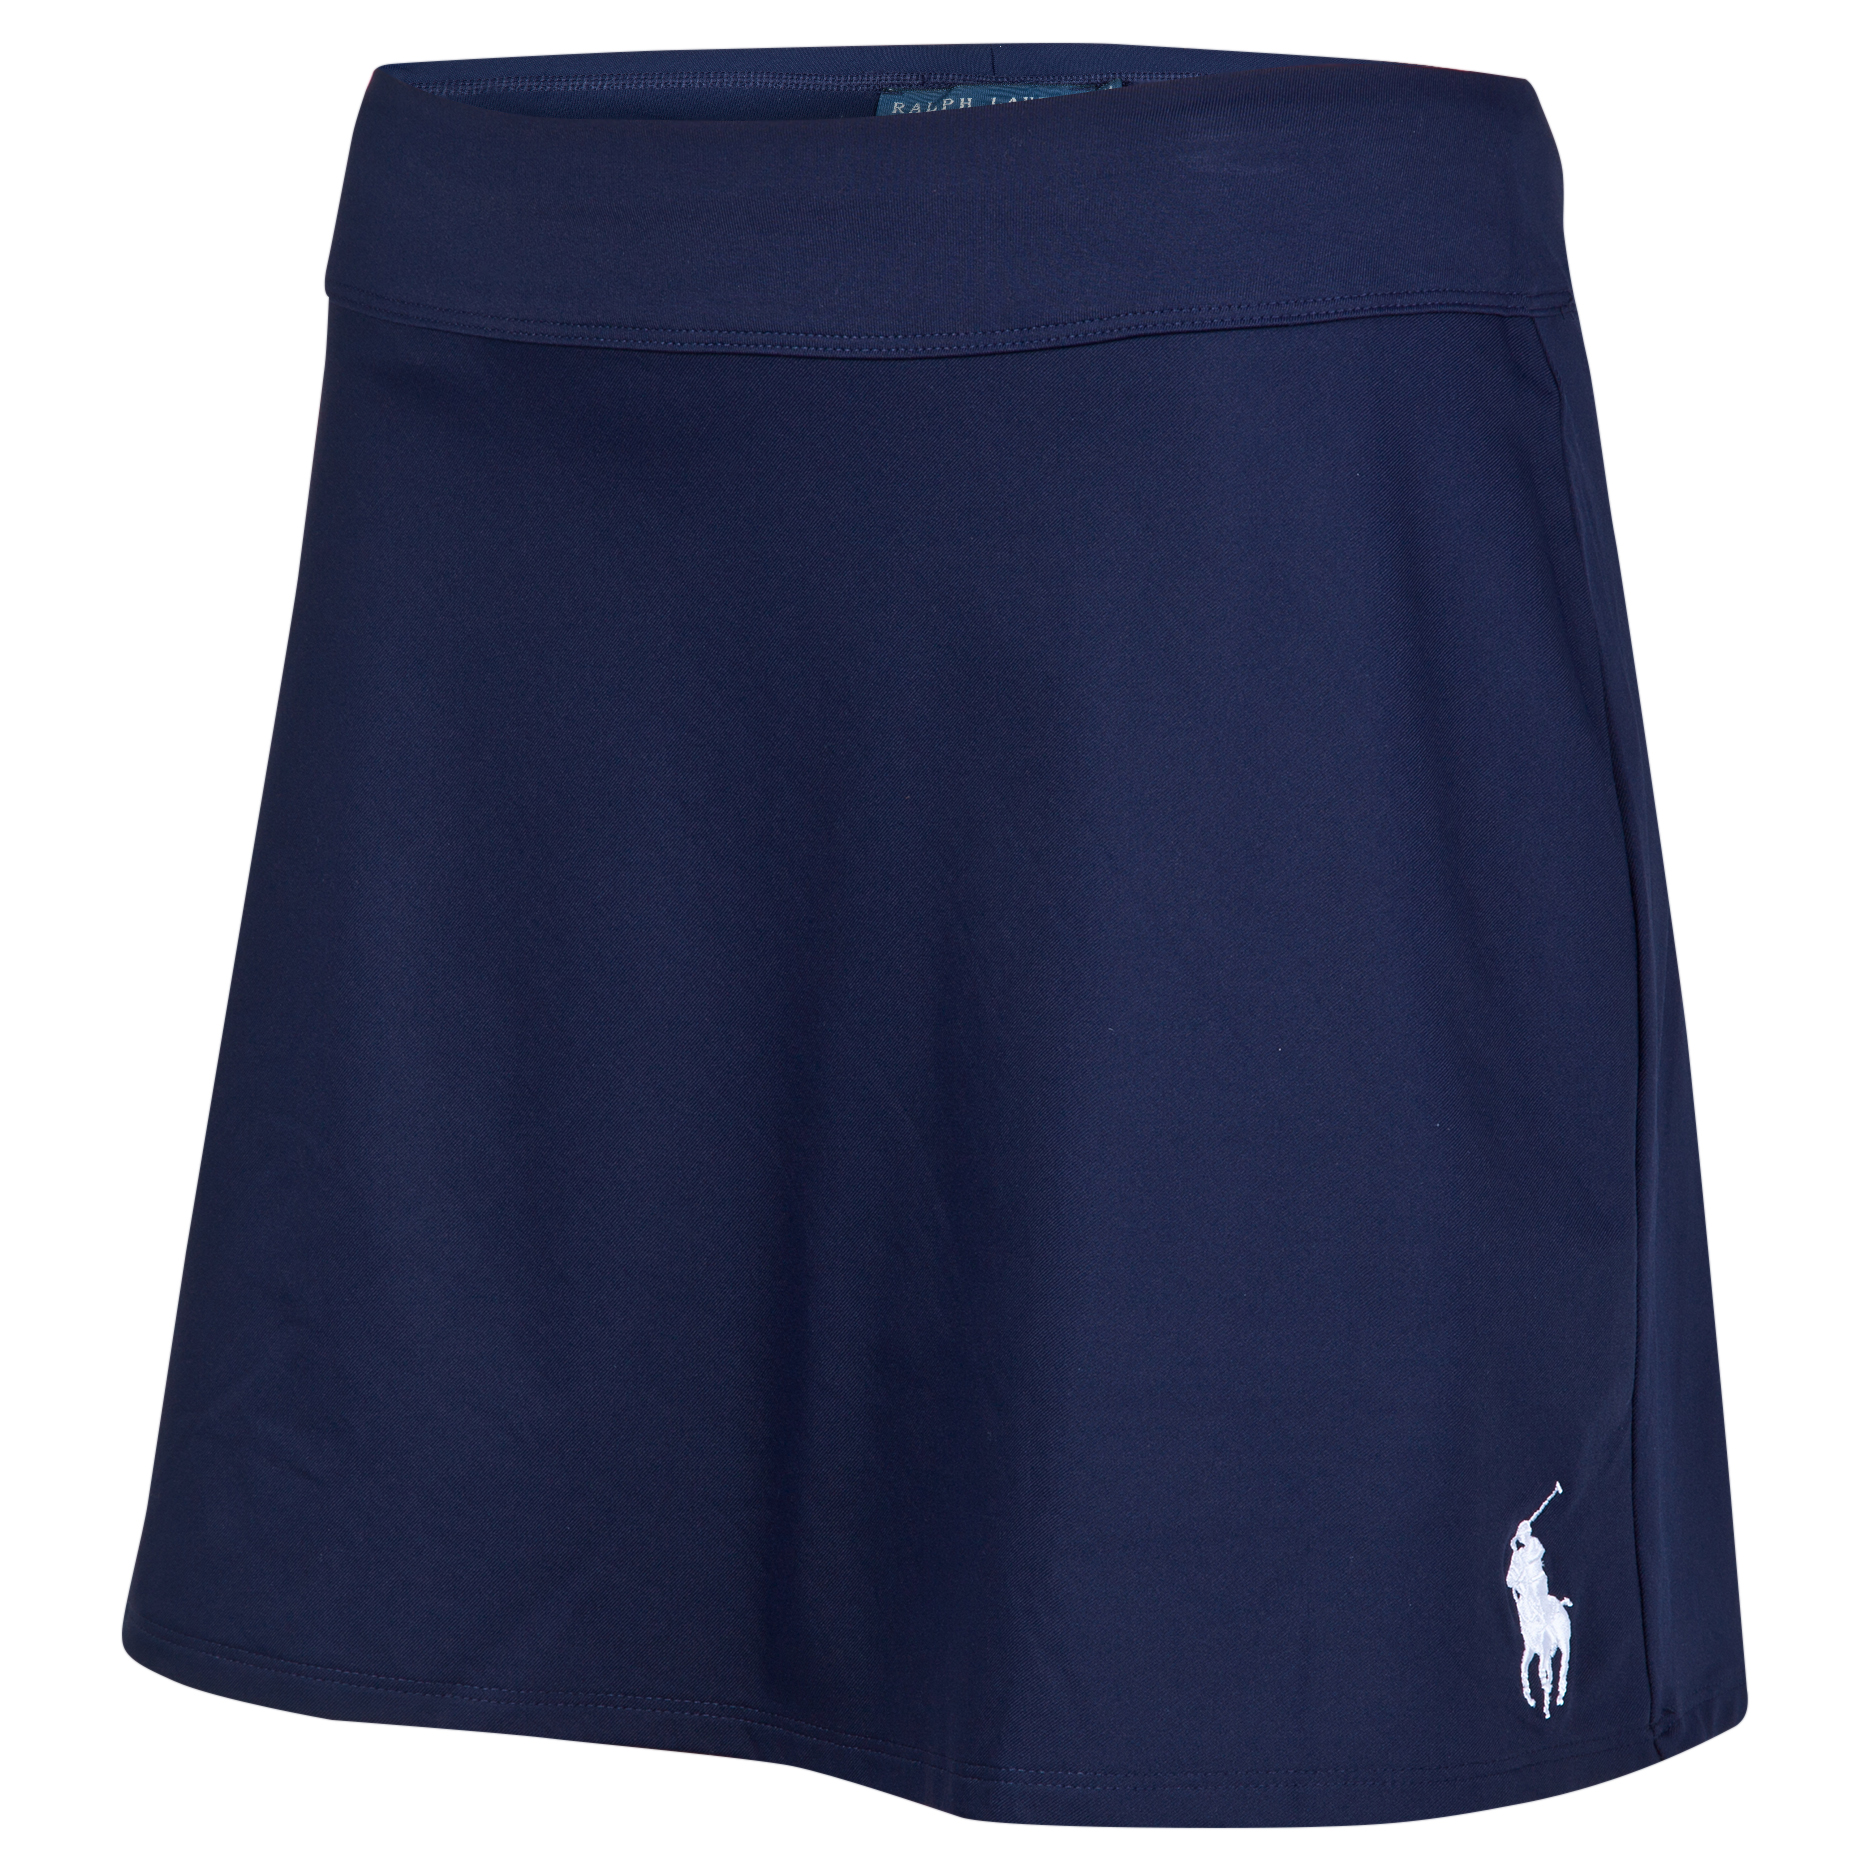 Wimbledon Ralph Lauren Wimbledon Ball Girl Skirt - Womens French Navy